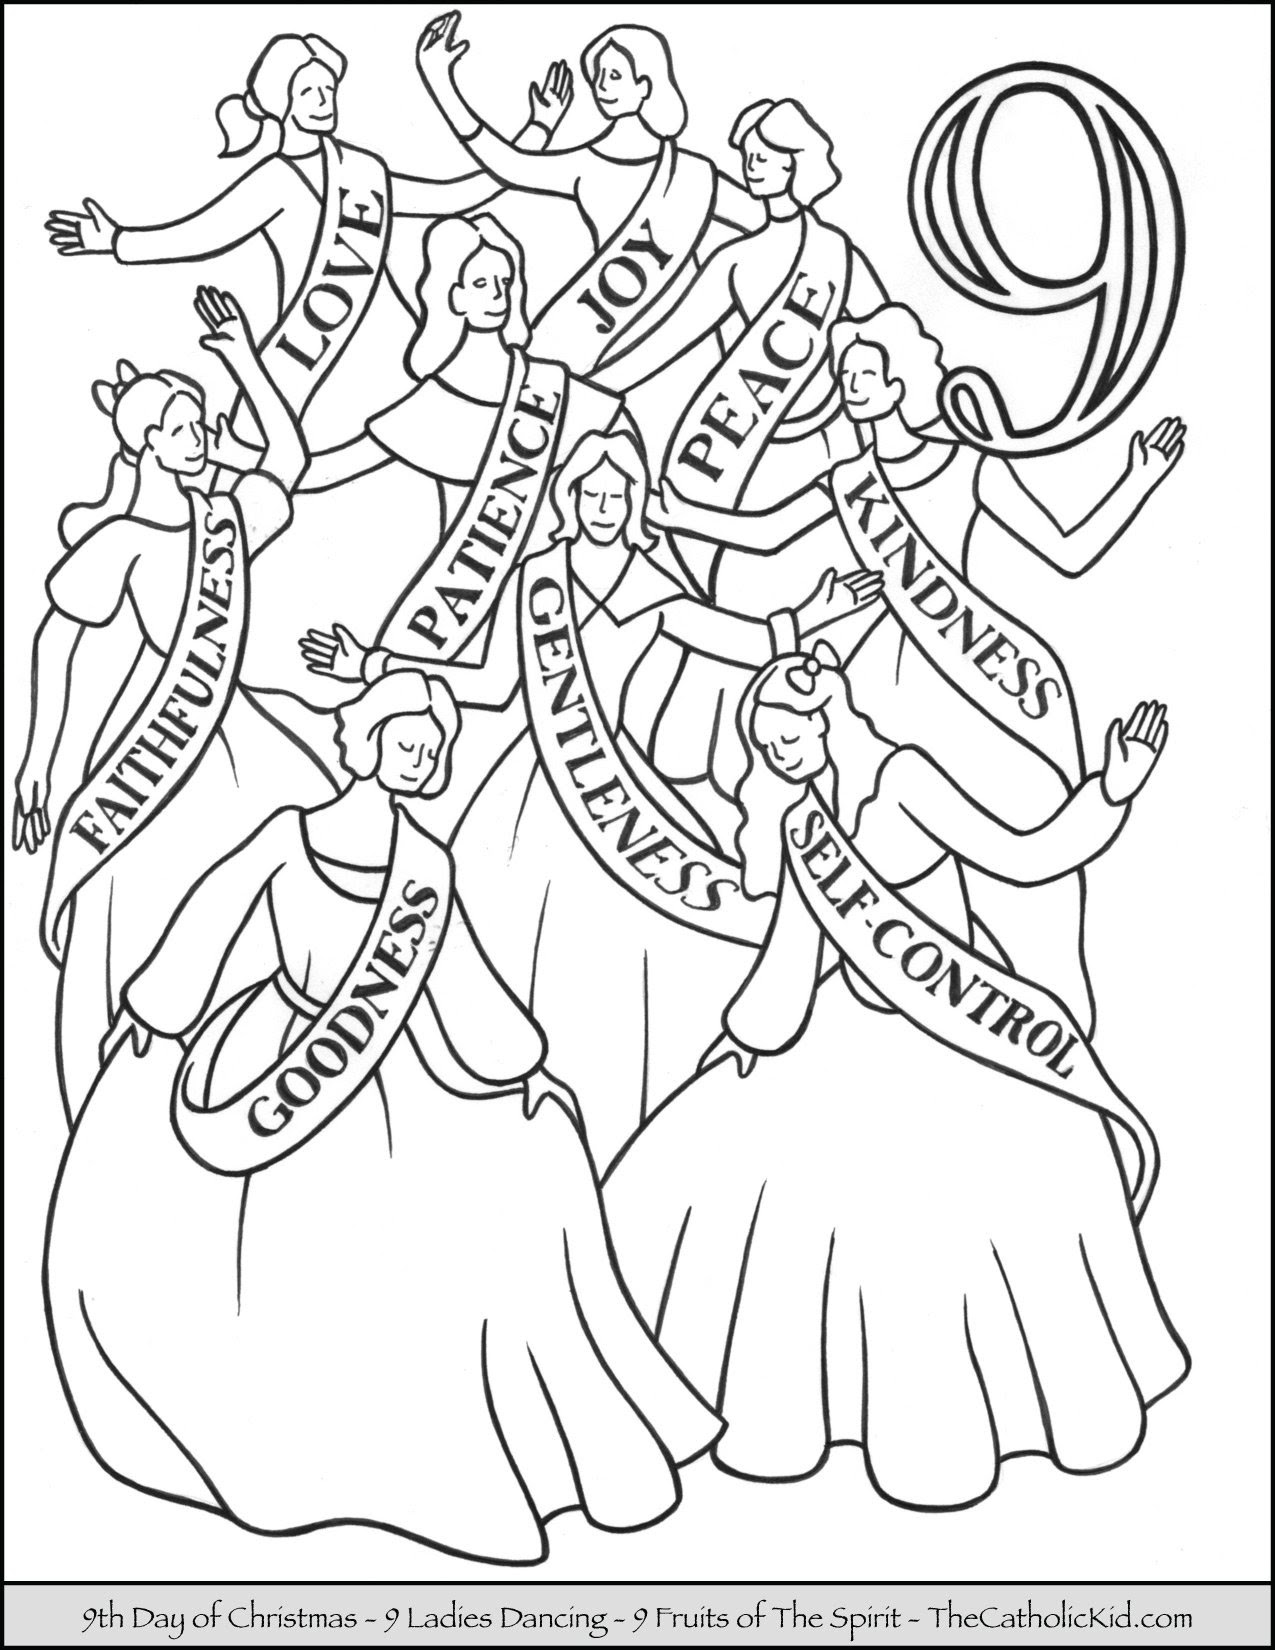 12 Days of Christmas Coloring Pages - TheCatholicKid.com